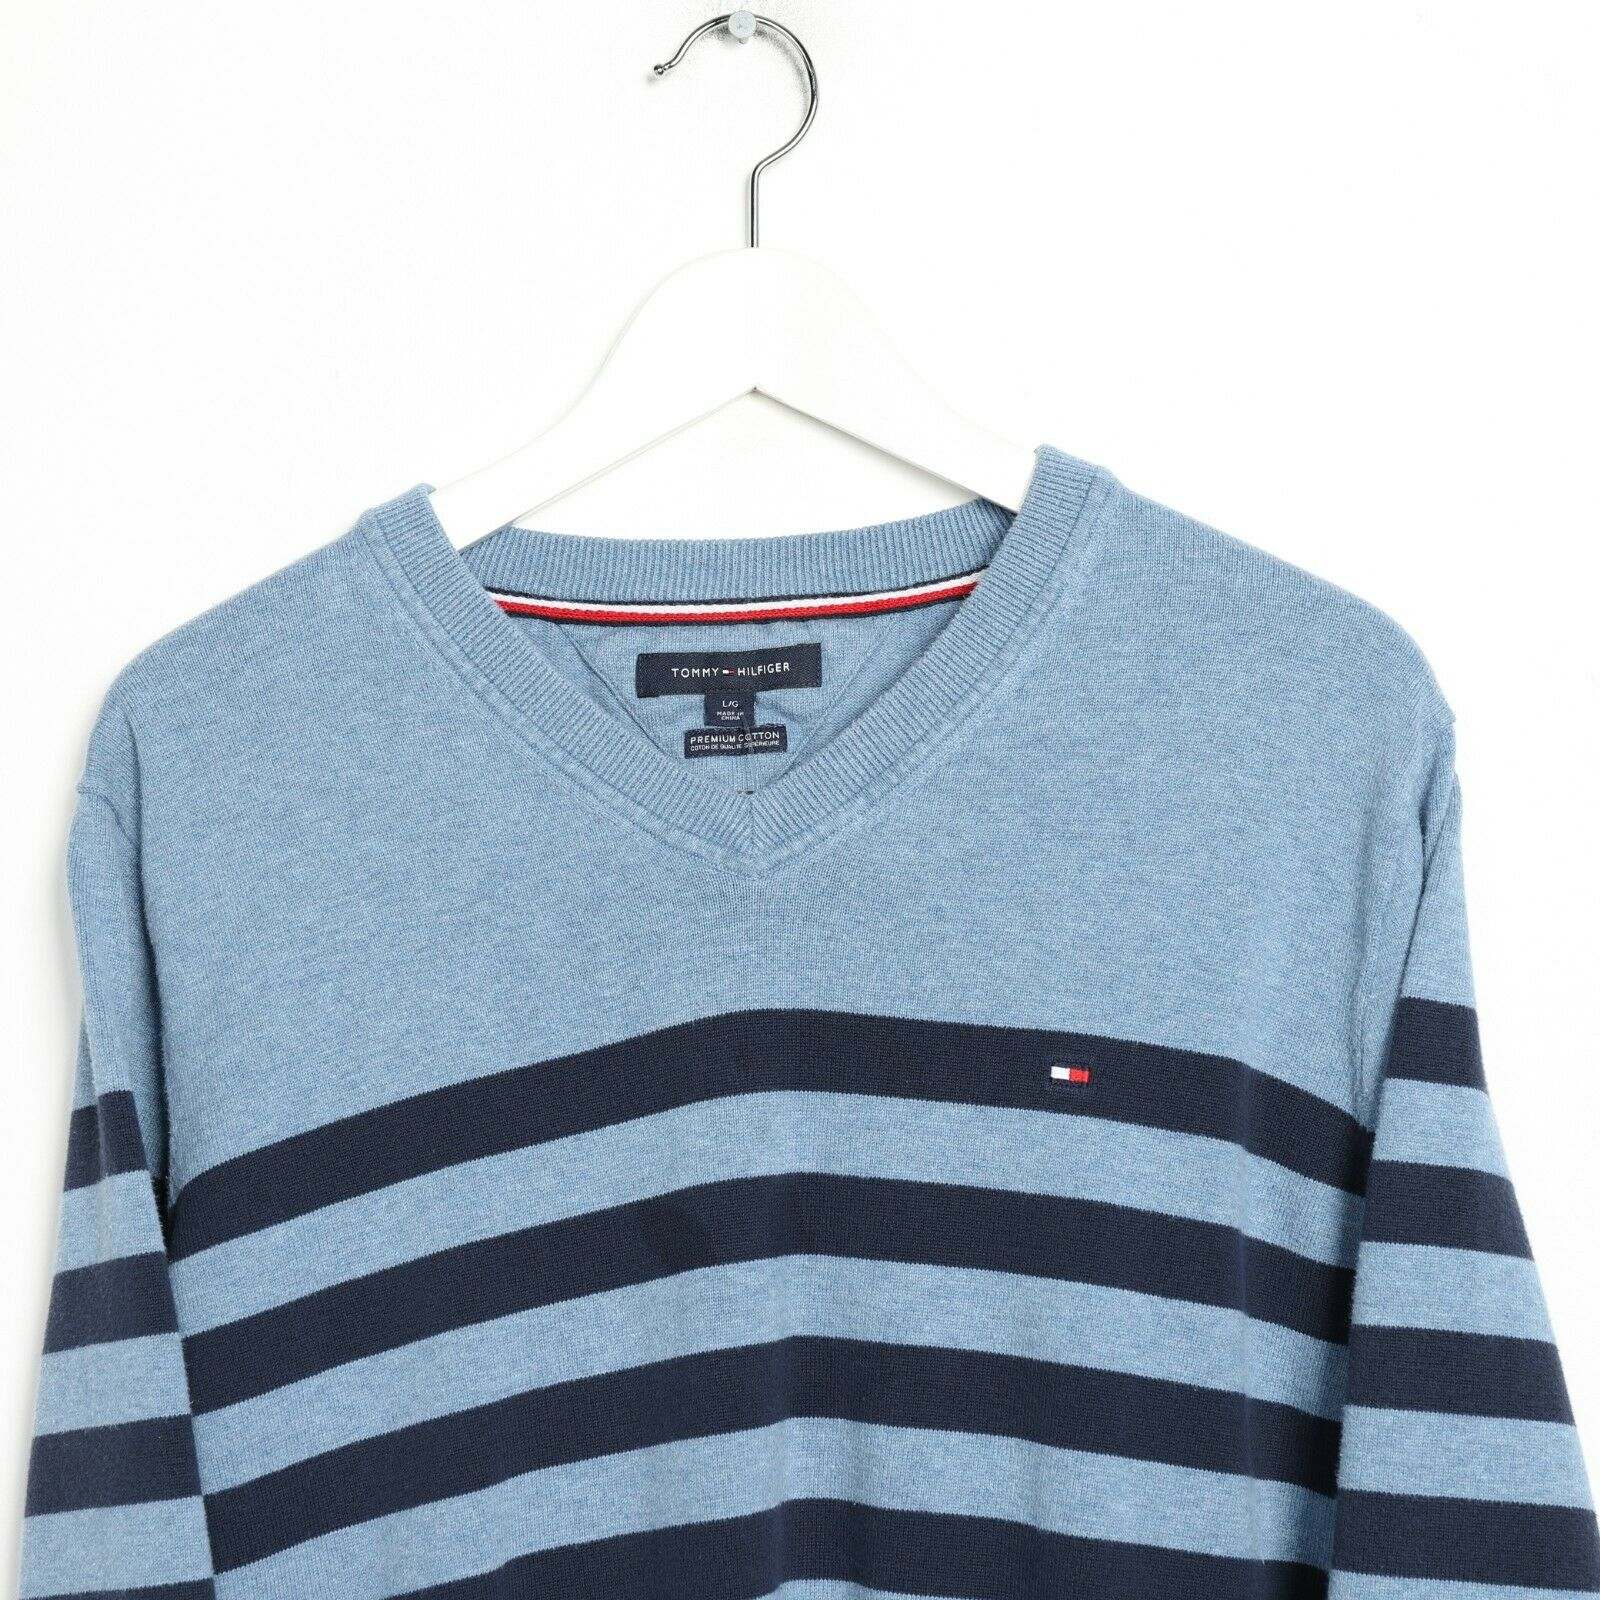 Vintage TOMMY HILFIGER Small Logo Striped Lightweight Sweatshirt Blue Medium M